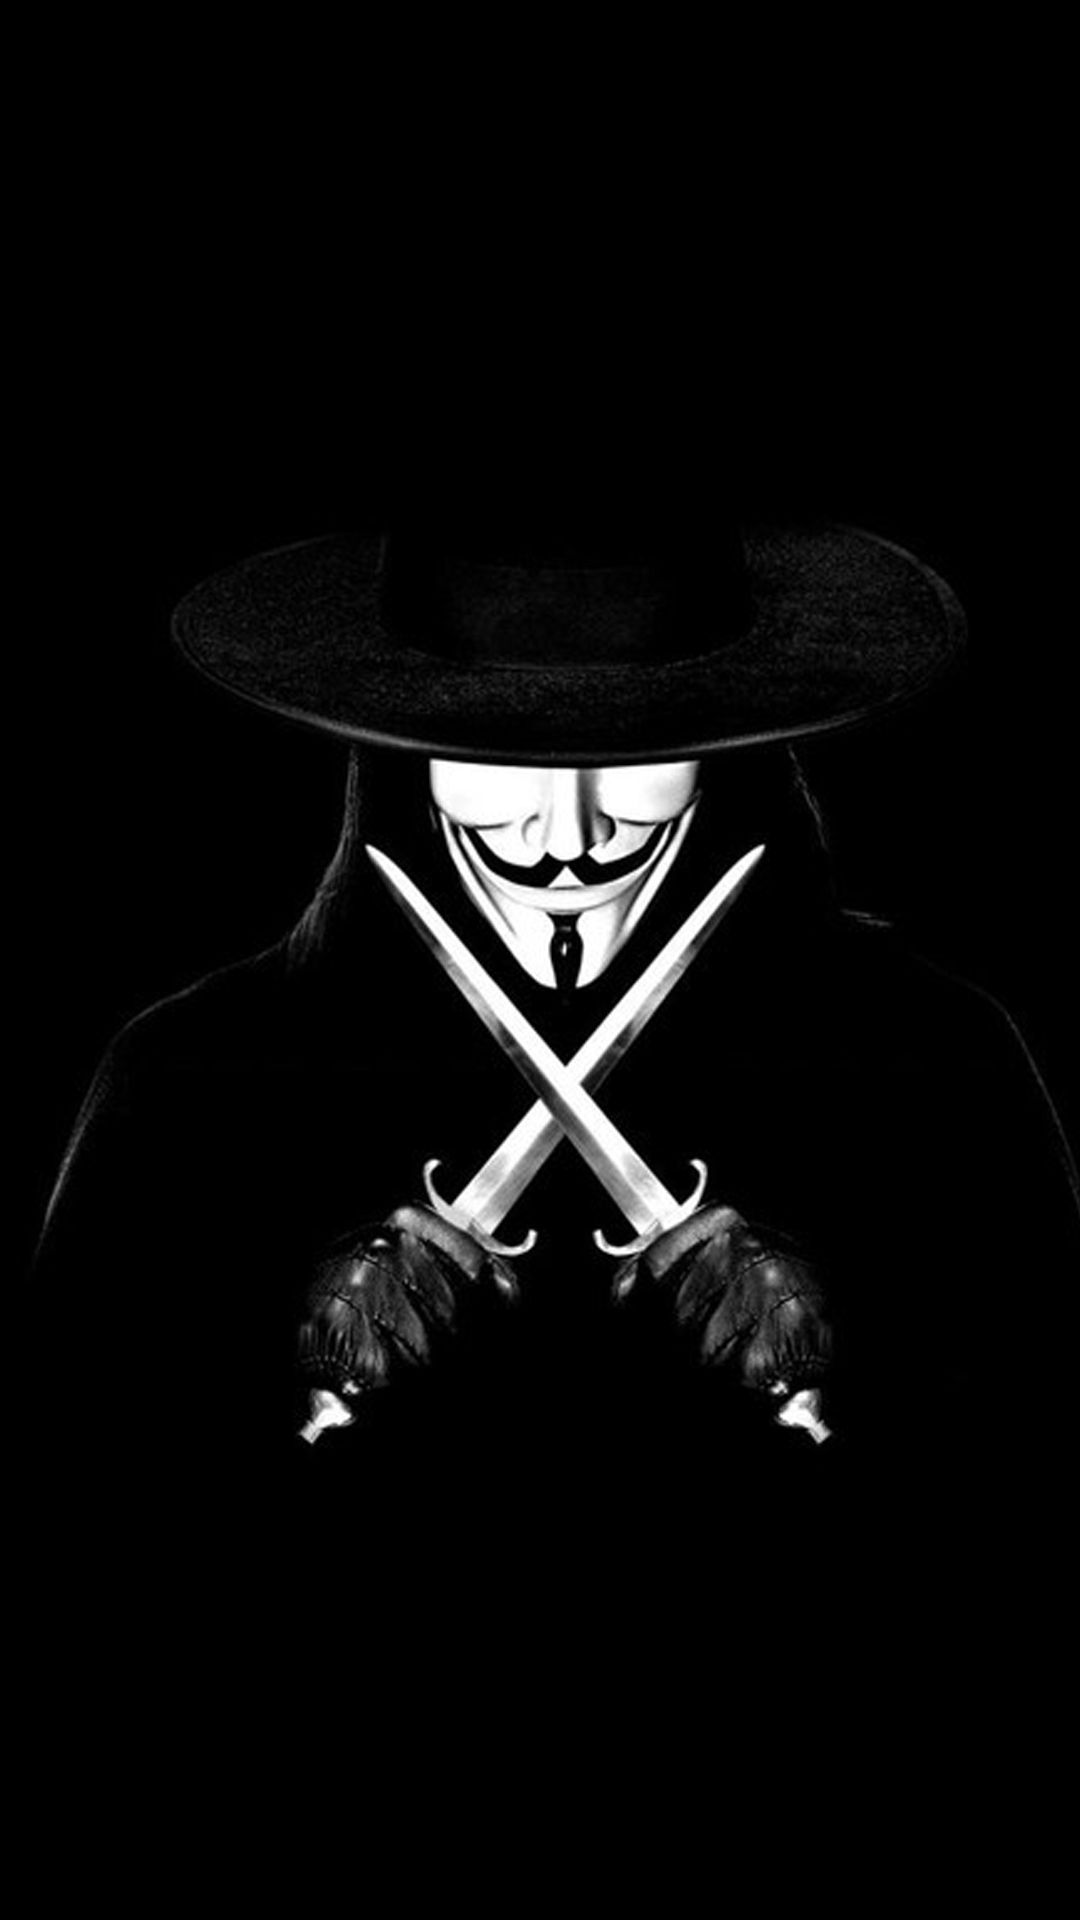 V for Vendetta anonymous 4chan hackers